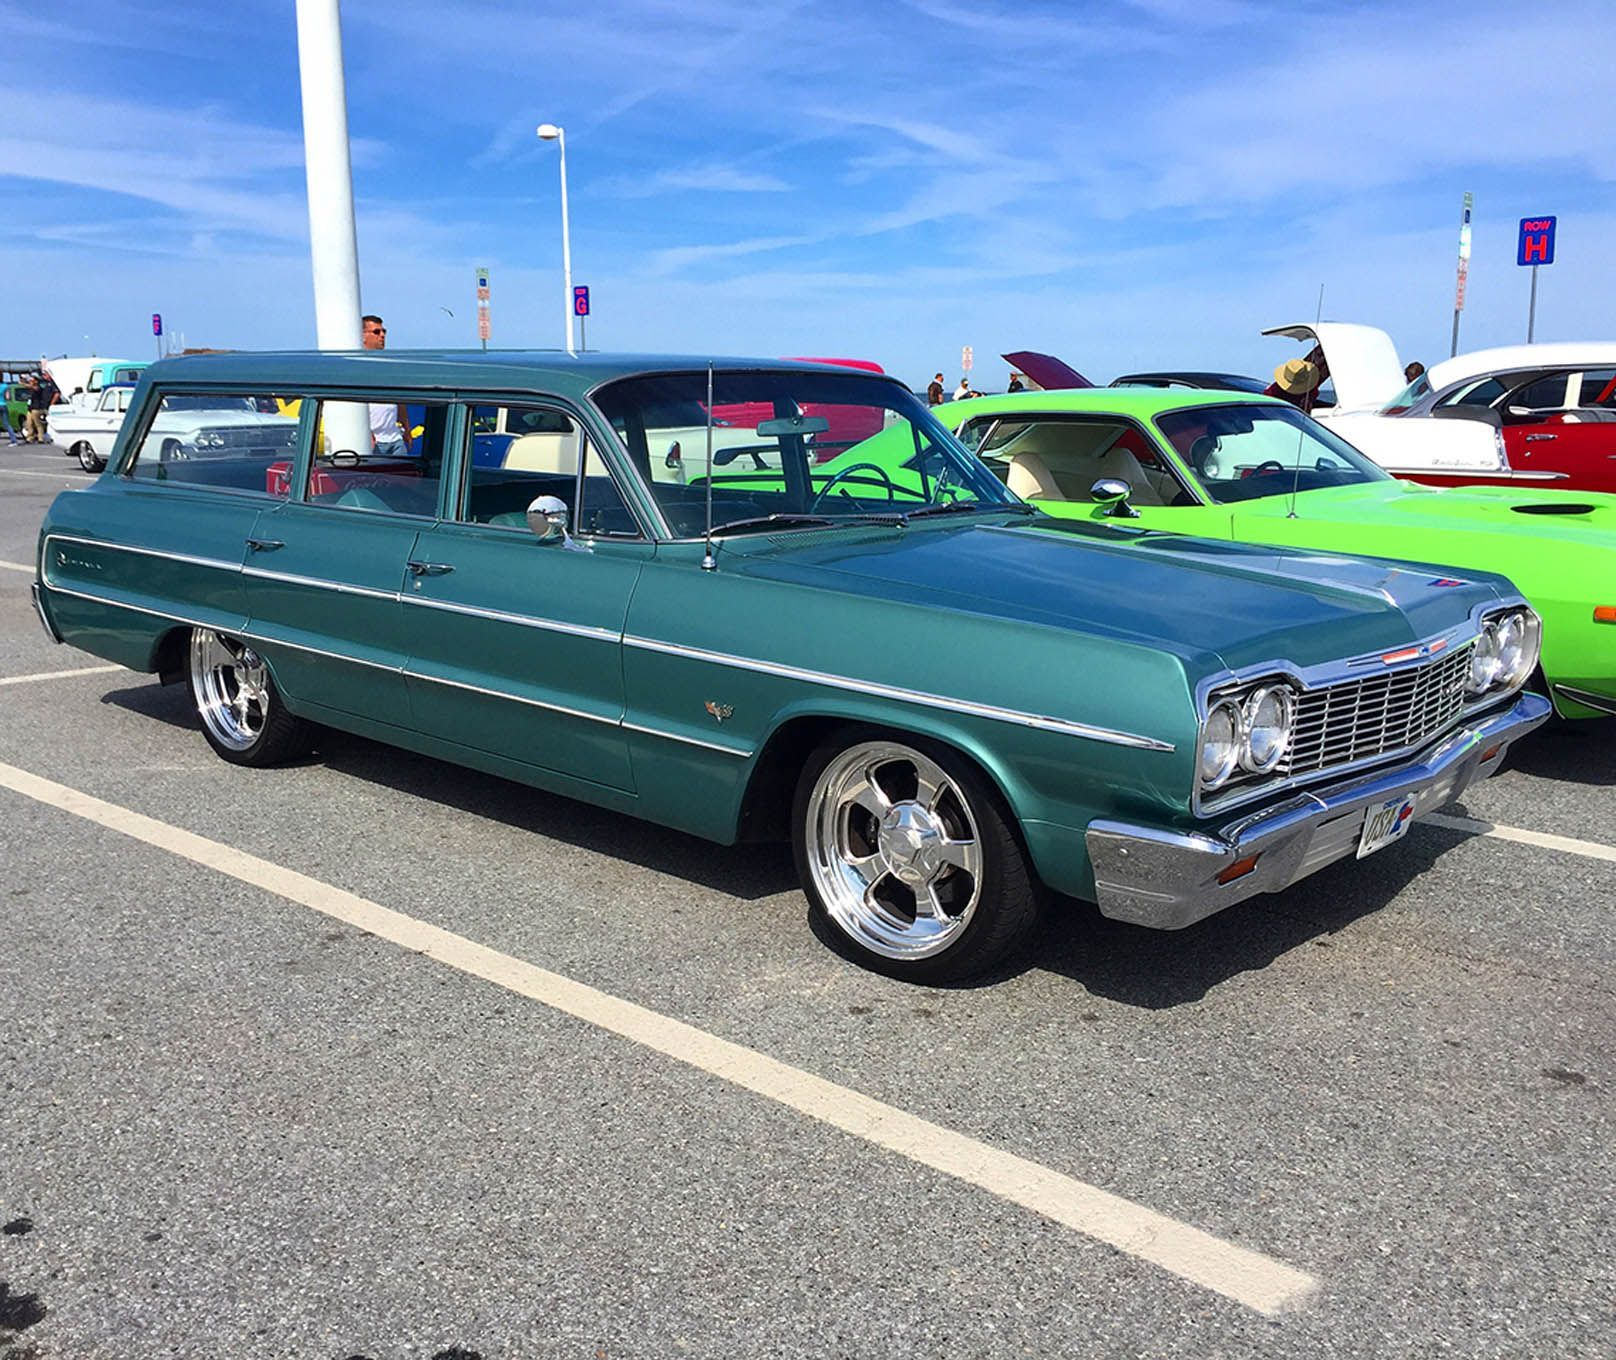 1956 ford country squire smcars net car blueprints forum - 1964 Chevrolet Biscayne Custom Wagon Horse Power Pinterest Chevrolet Cars And Planes